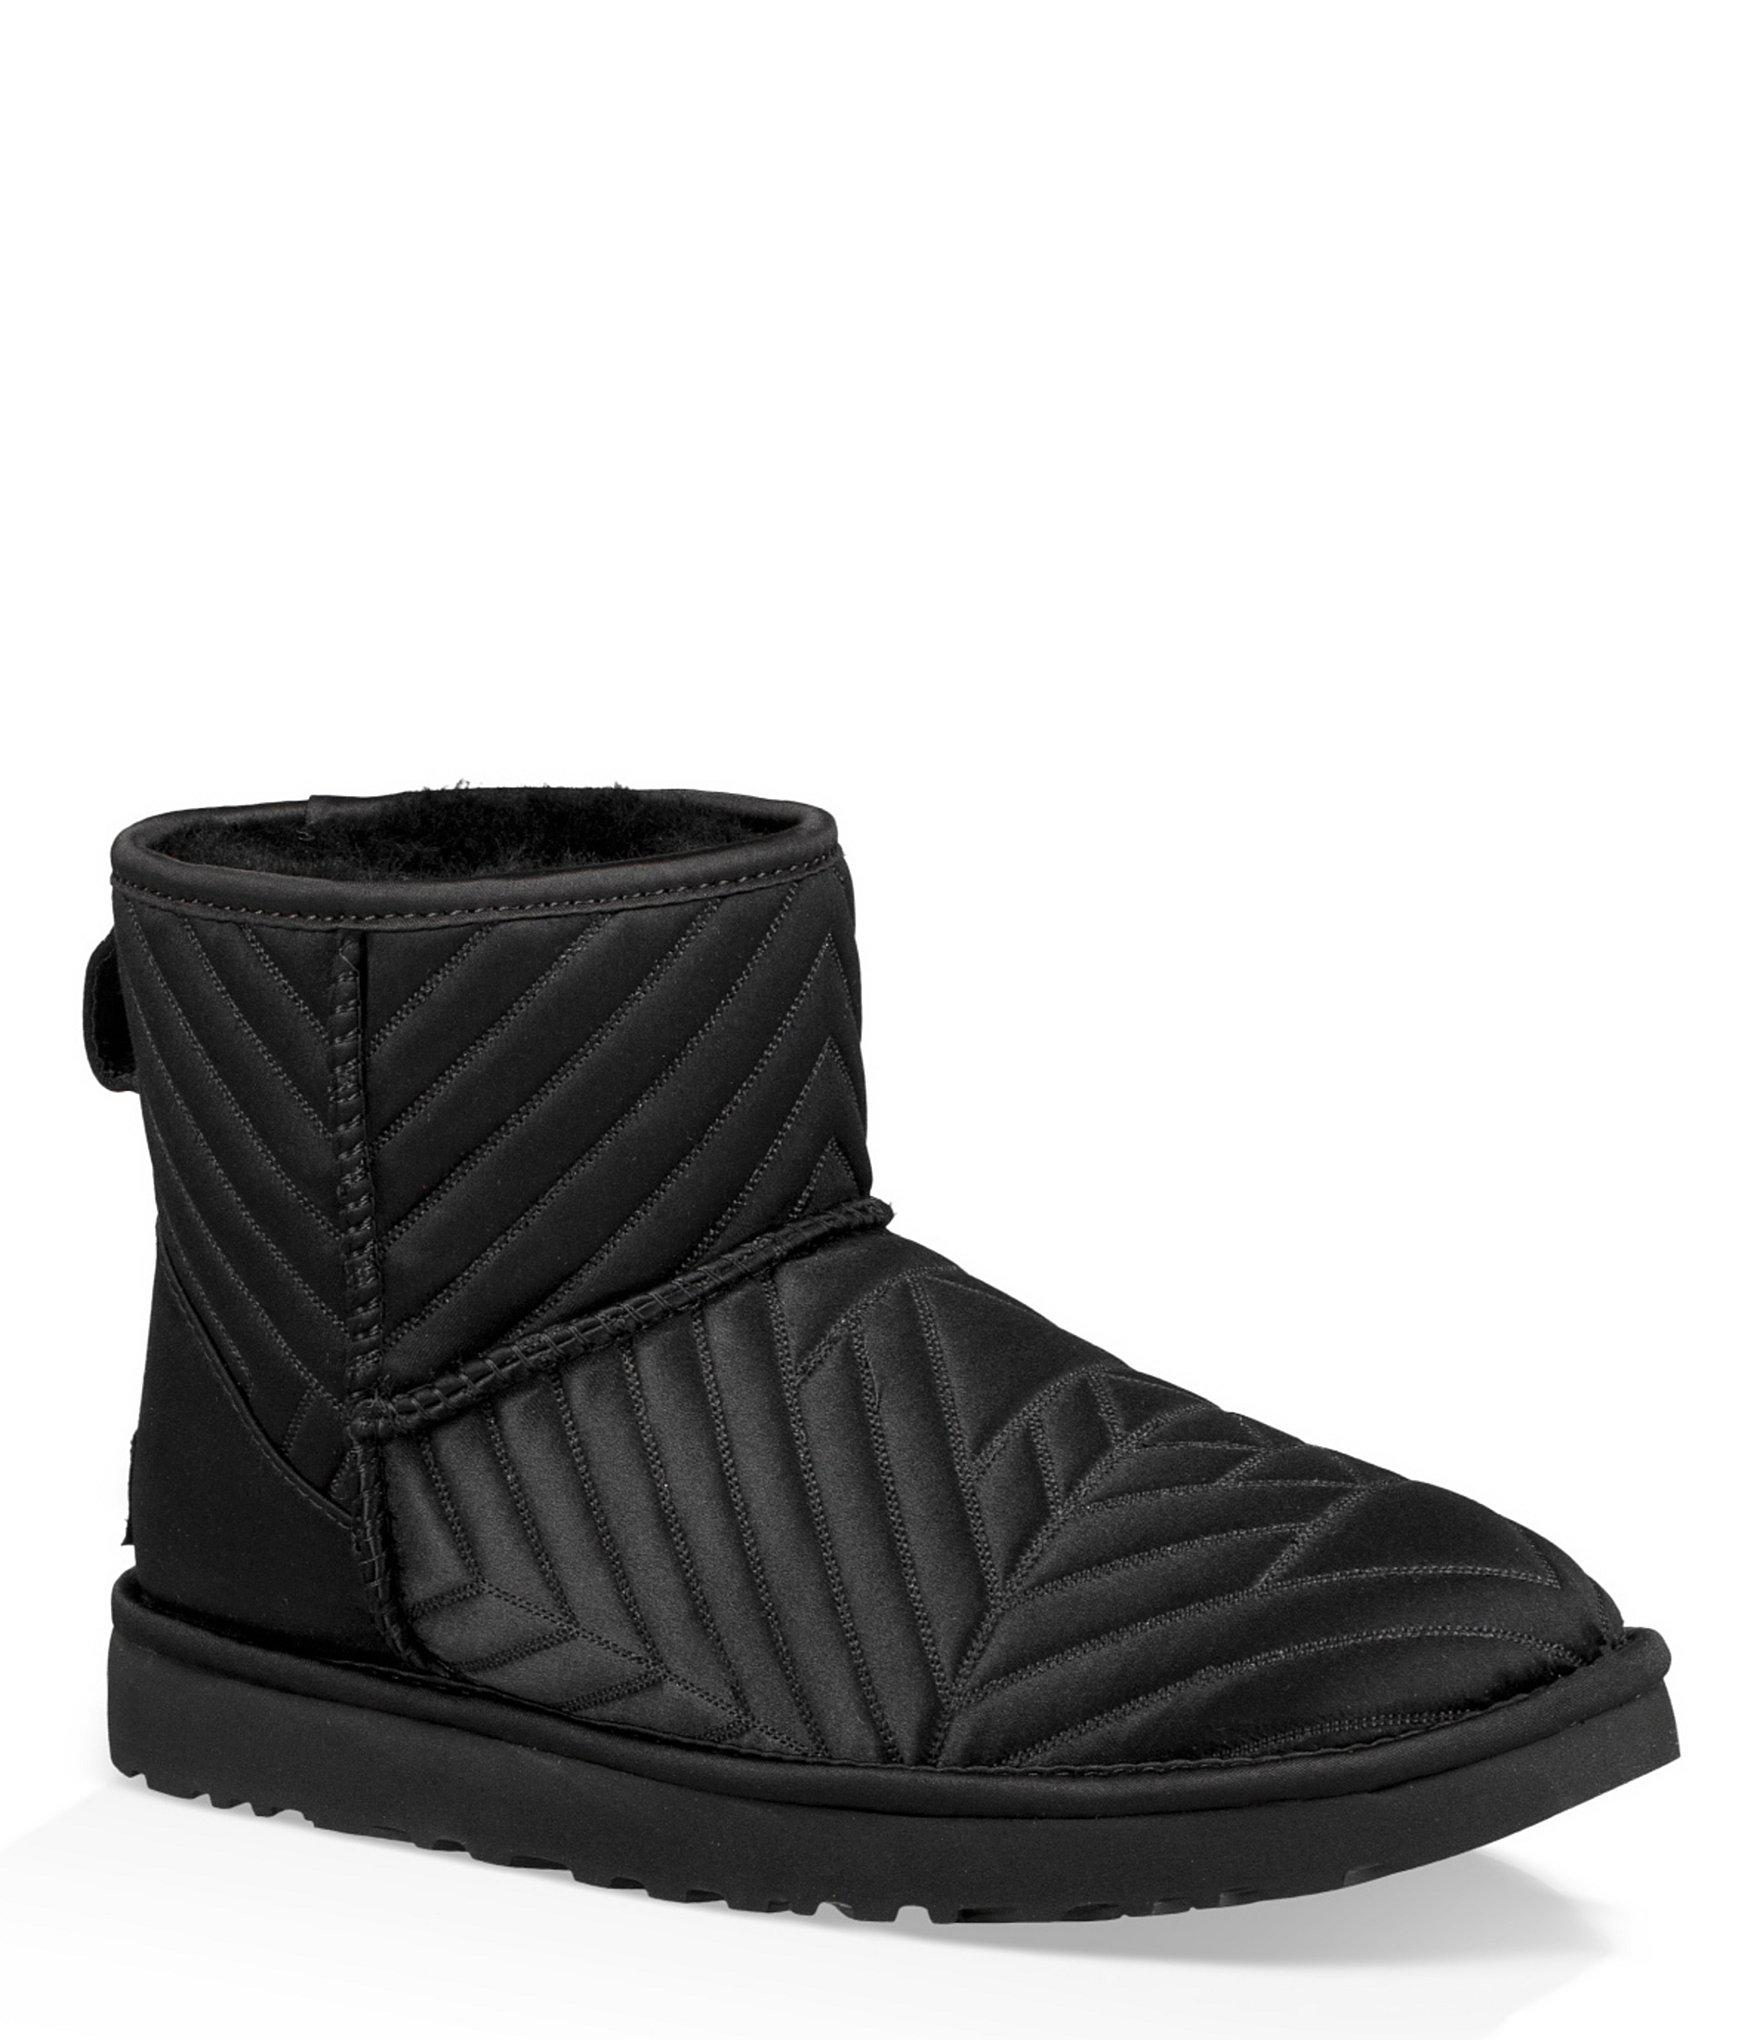 Ugg Classic Mini Quilted Satin Booties In Black Lyst